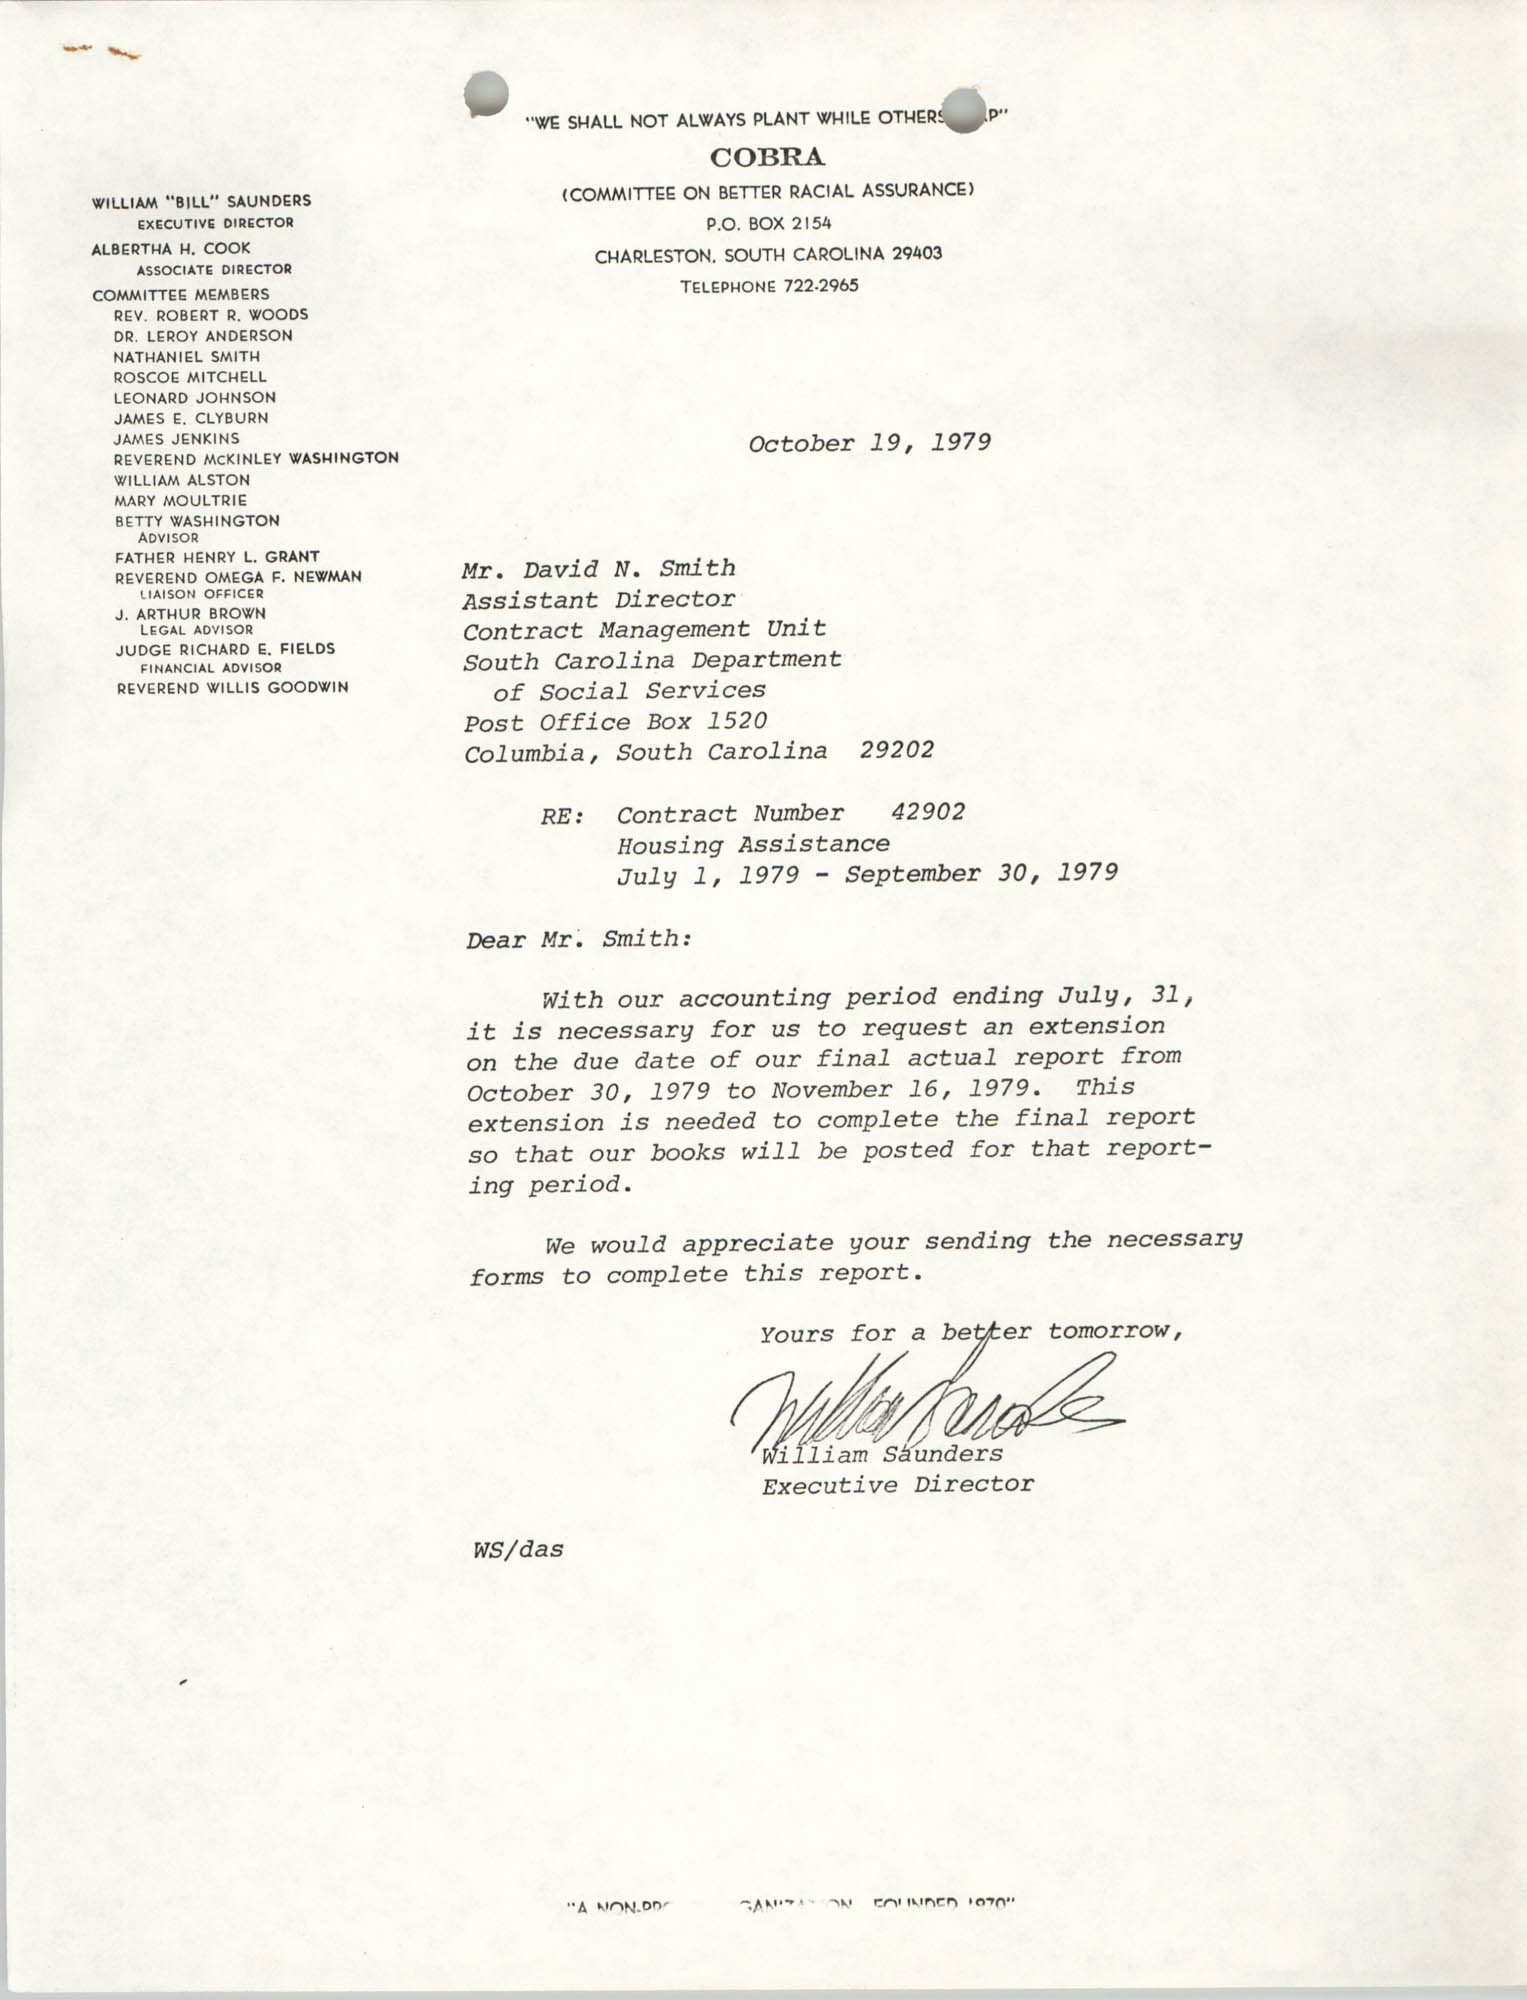 Letter from William Saunders to David N. Smith, October 19, 1979